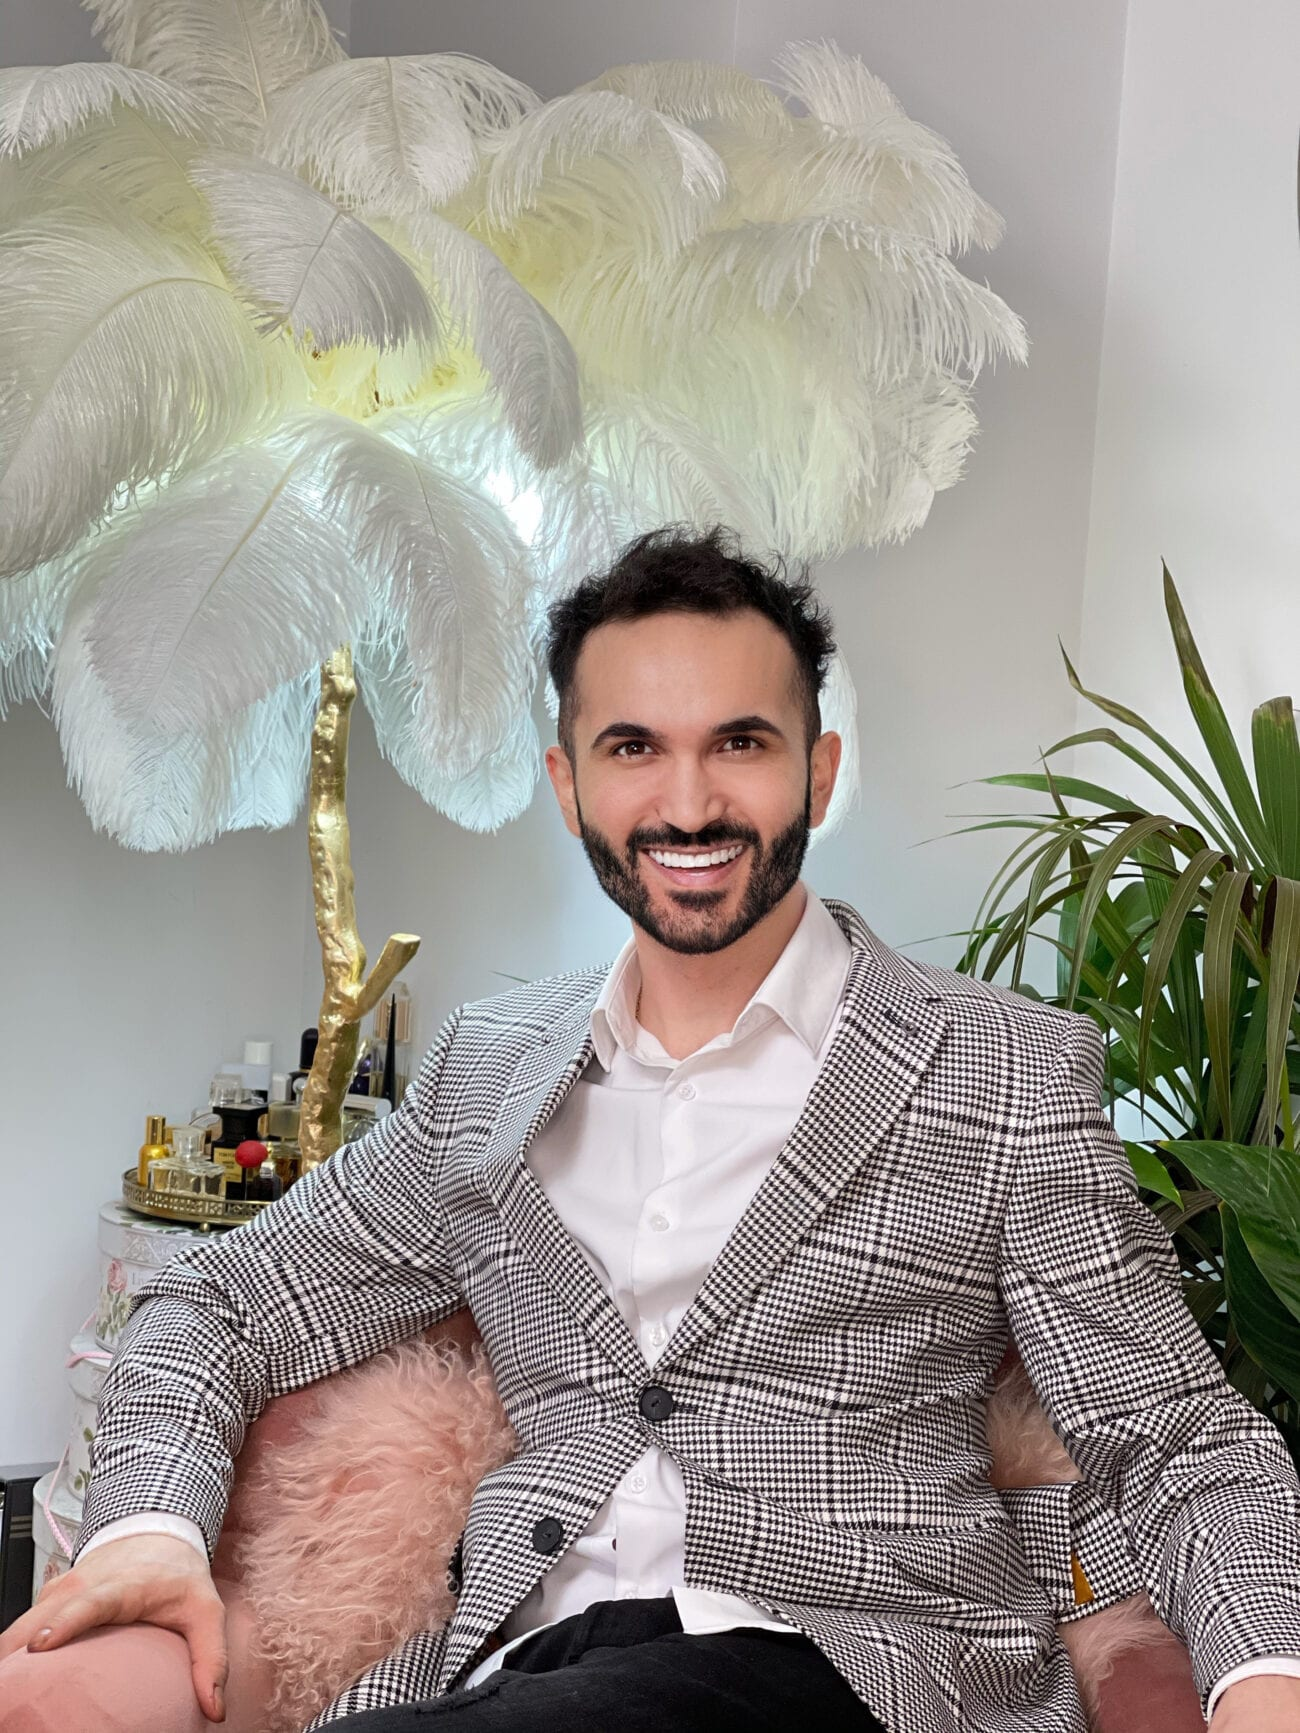 Celebrity hairdresser Samet Zili has styled the hair of many big celebrities. Take a look at how he got his start and worked his way to success.